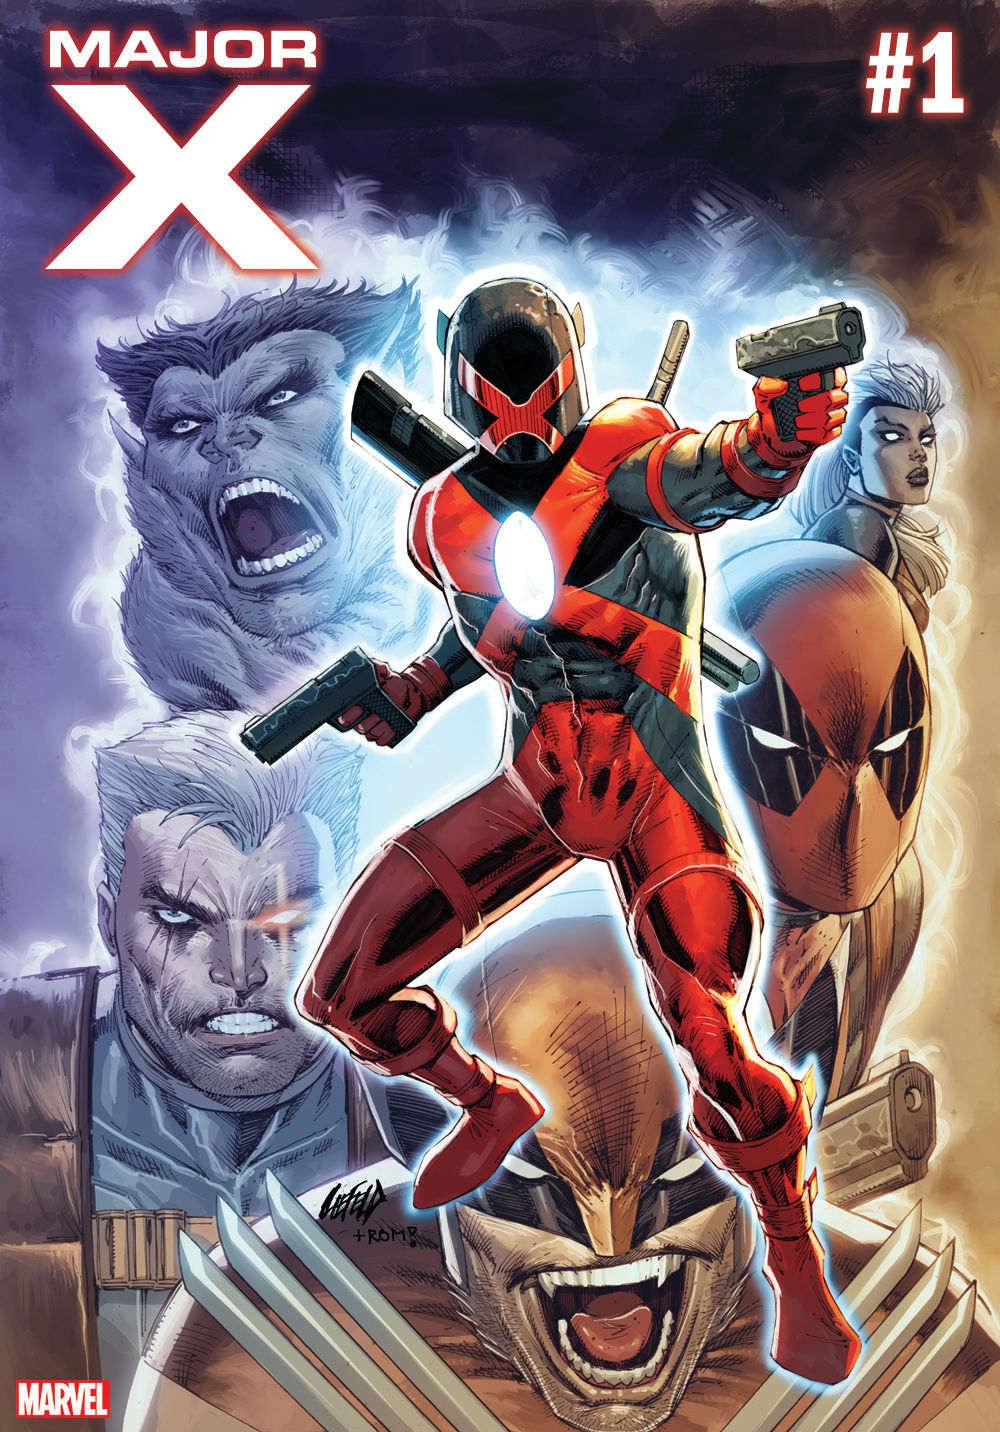 Marvel Comics' Major X by Rob Liefeld